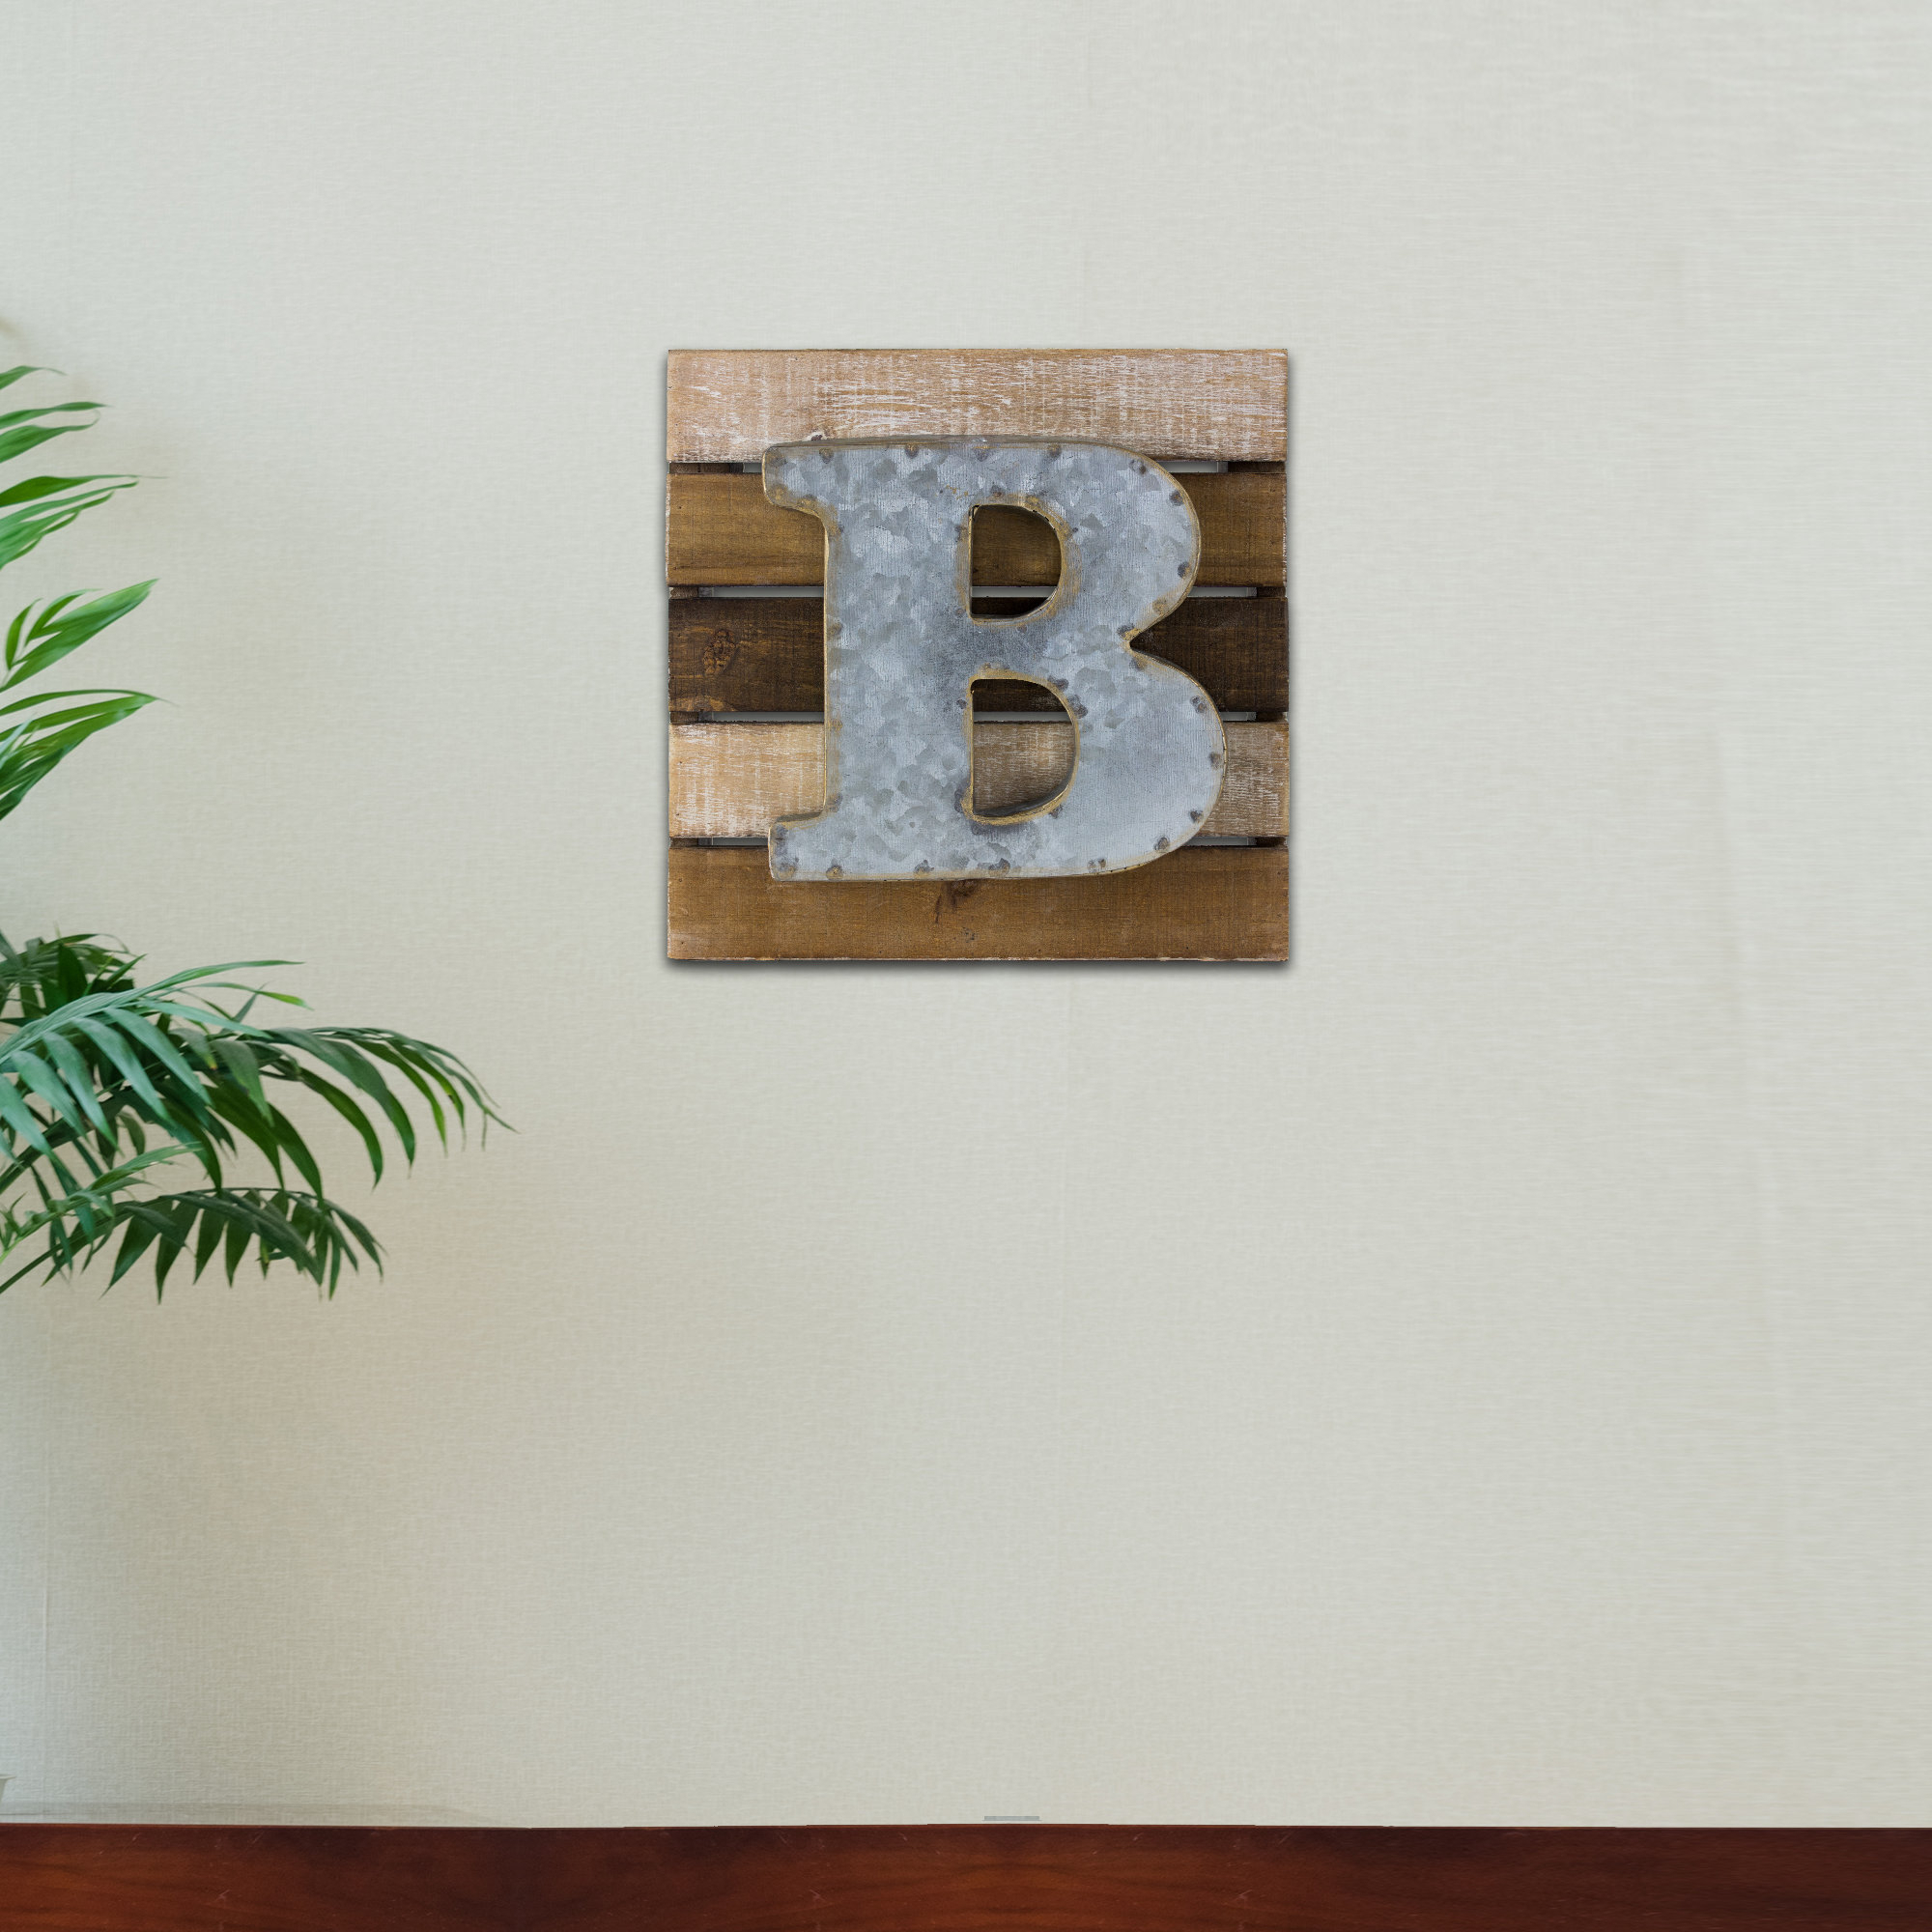 "Wood Rustic Letter Block 'b' Wall Decor with Mccue 11.5"" Typewriter Text Wall Decor (Image 30 of 30)"